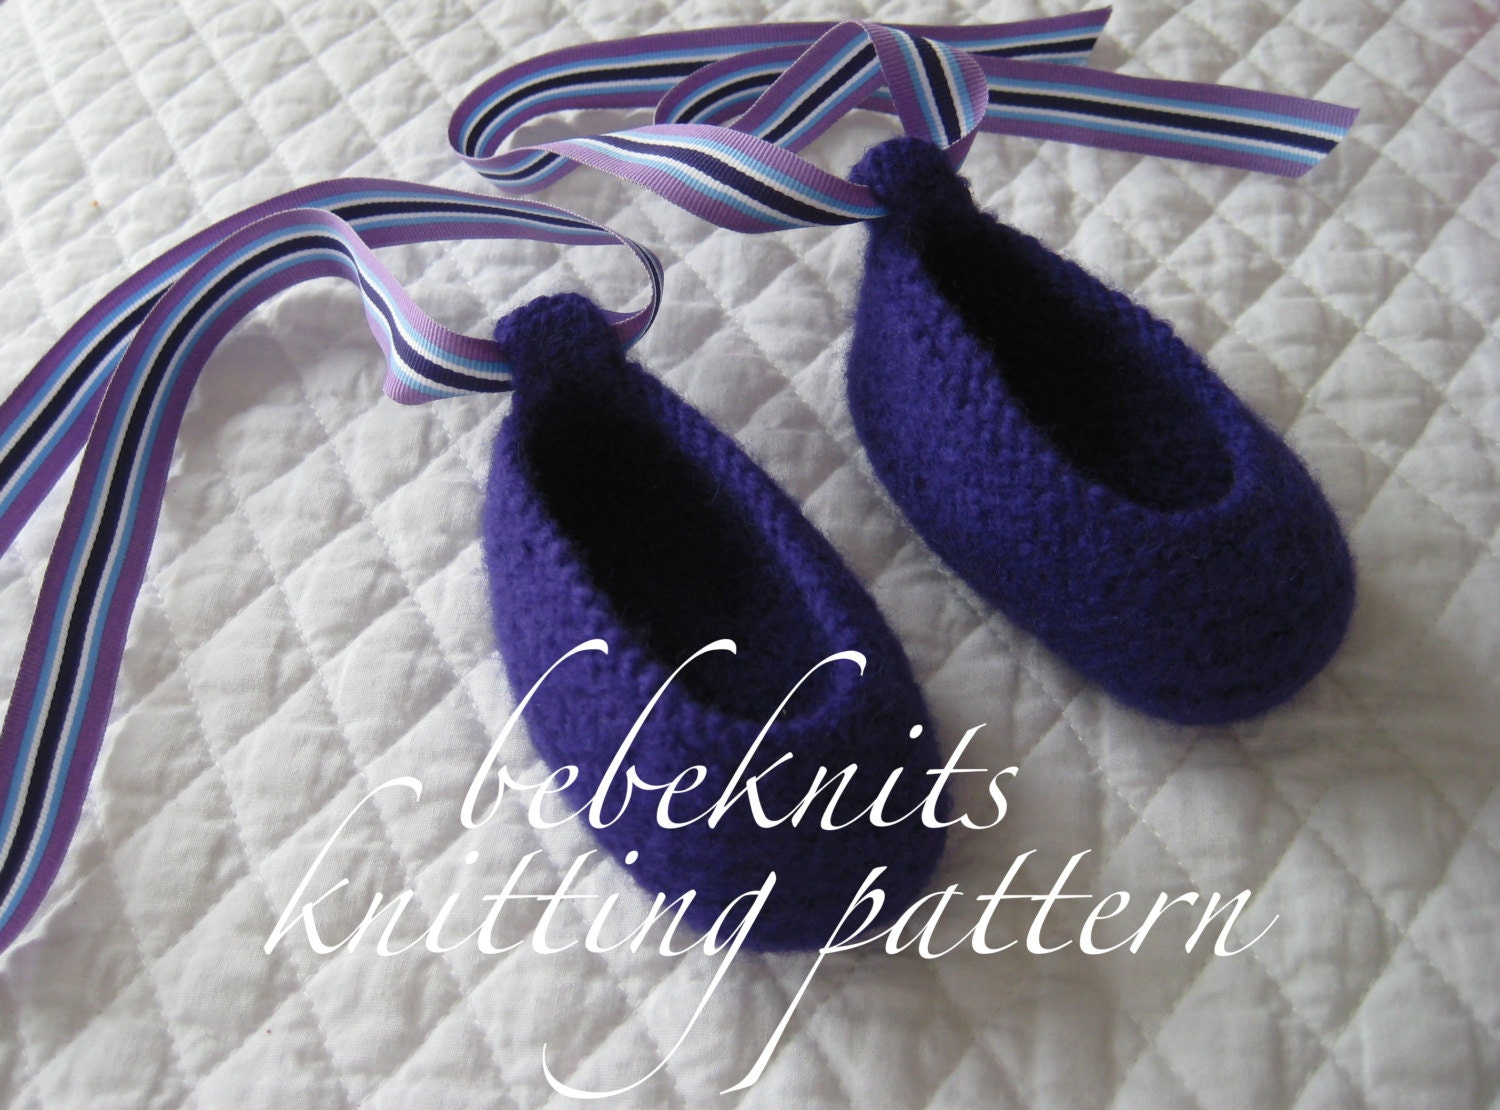 Baby Ballet Slippers Knitting Pattern : Bebeknits Felted Baby Ballet Slippers Knitting Pattern in 3